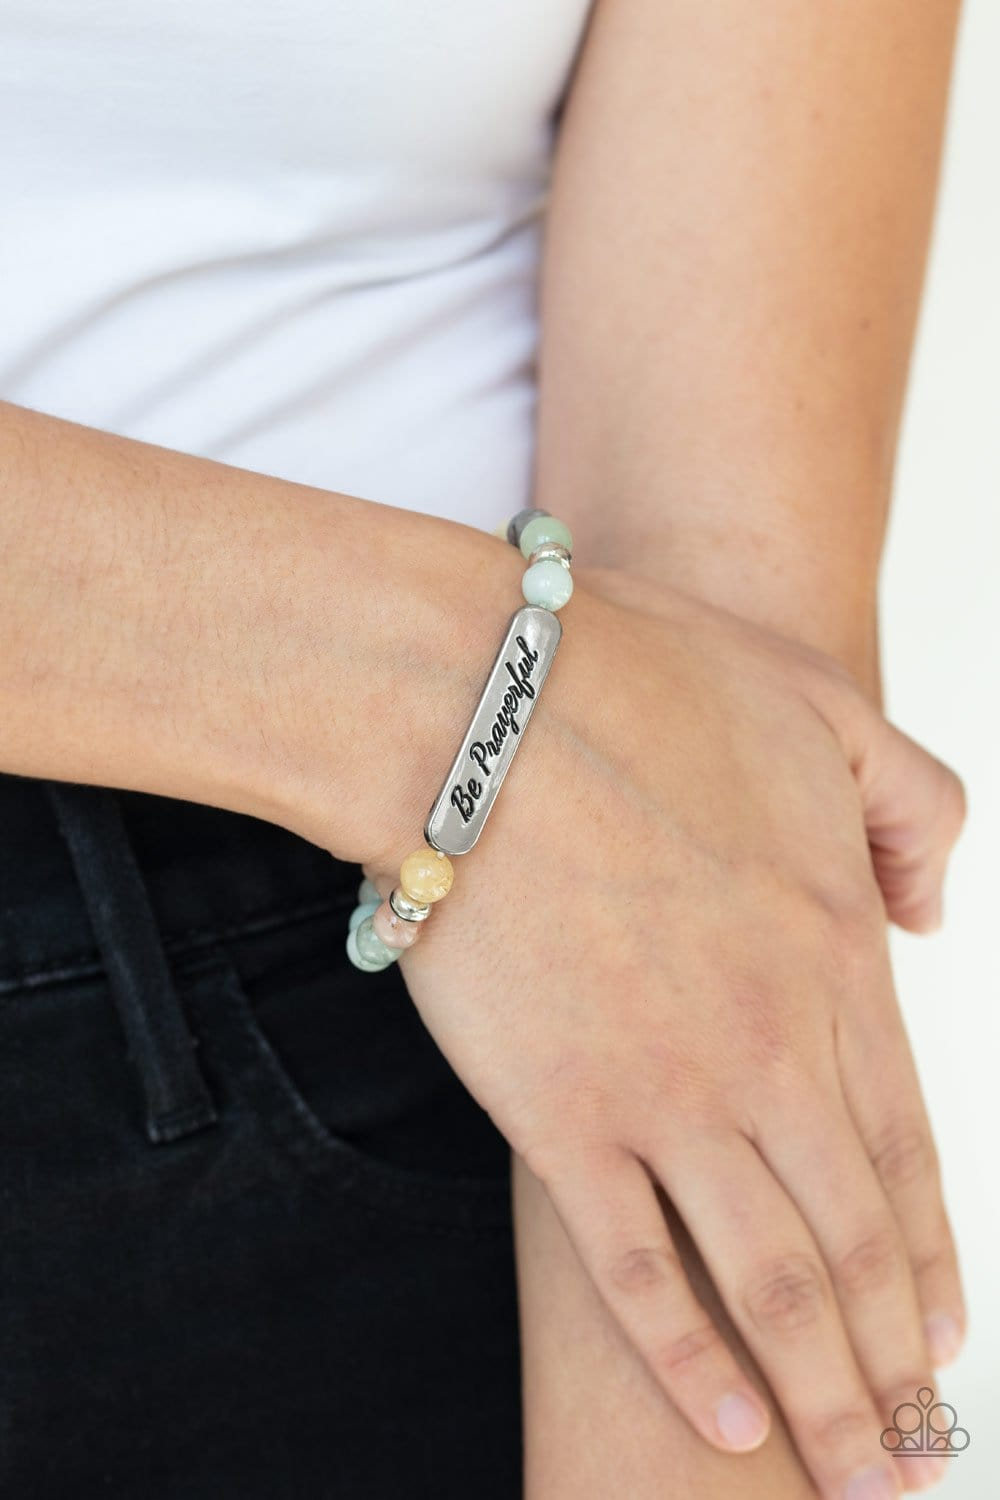 Paparazzi: Be Prayerful - Green Inspirational Bracelet